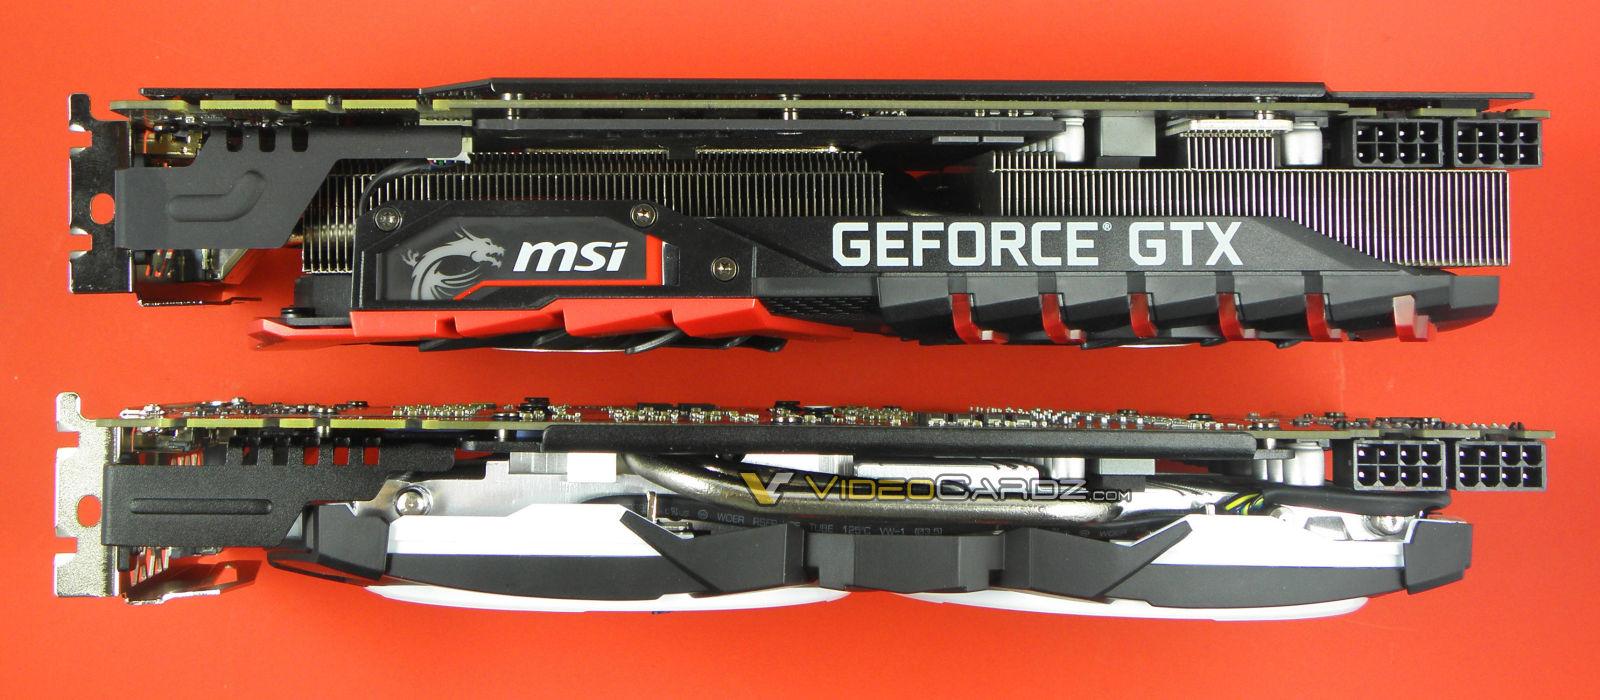 MSI GeForce GTX 1080 Ti ARMOR Review - A closer look @@ MSI GeForce